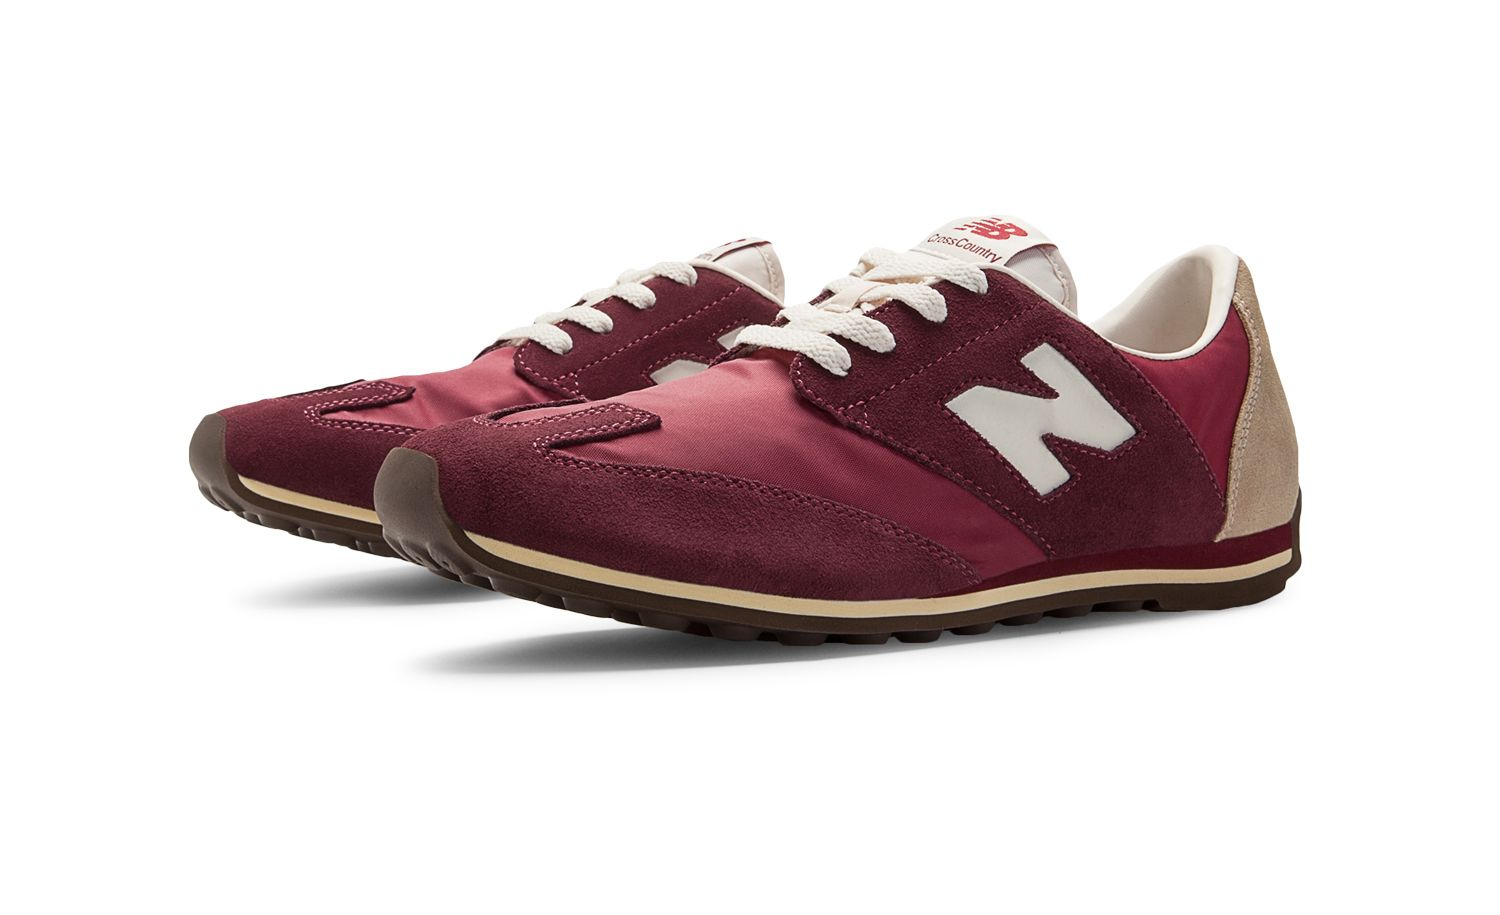 New Balance Cross Сountry